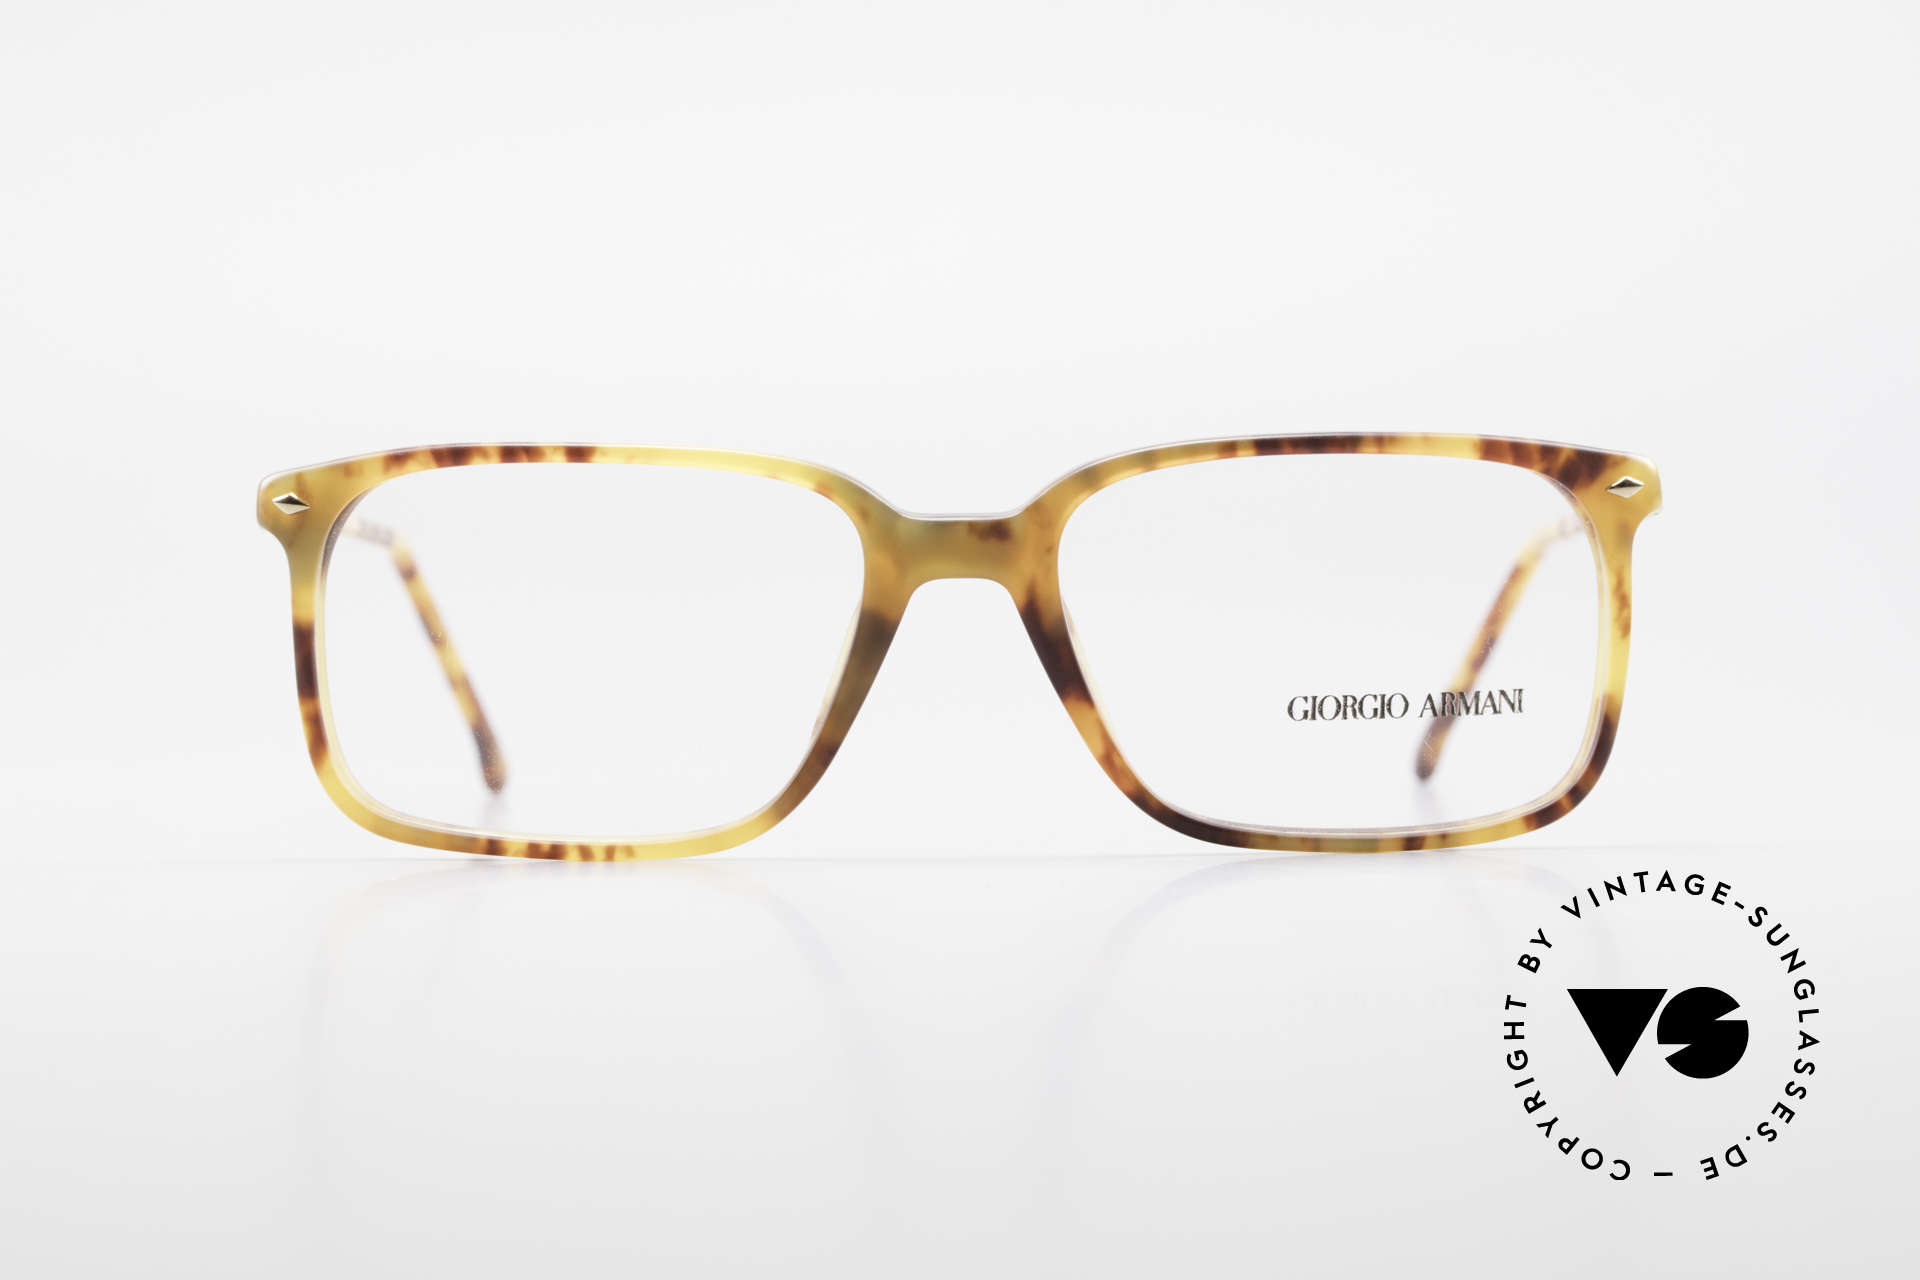 Giorgio Armani 332 True Vintage Eyeglass Frame, classic, timeless, elegant = characteristic of GA, Made for Men